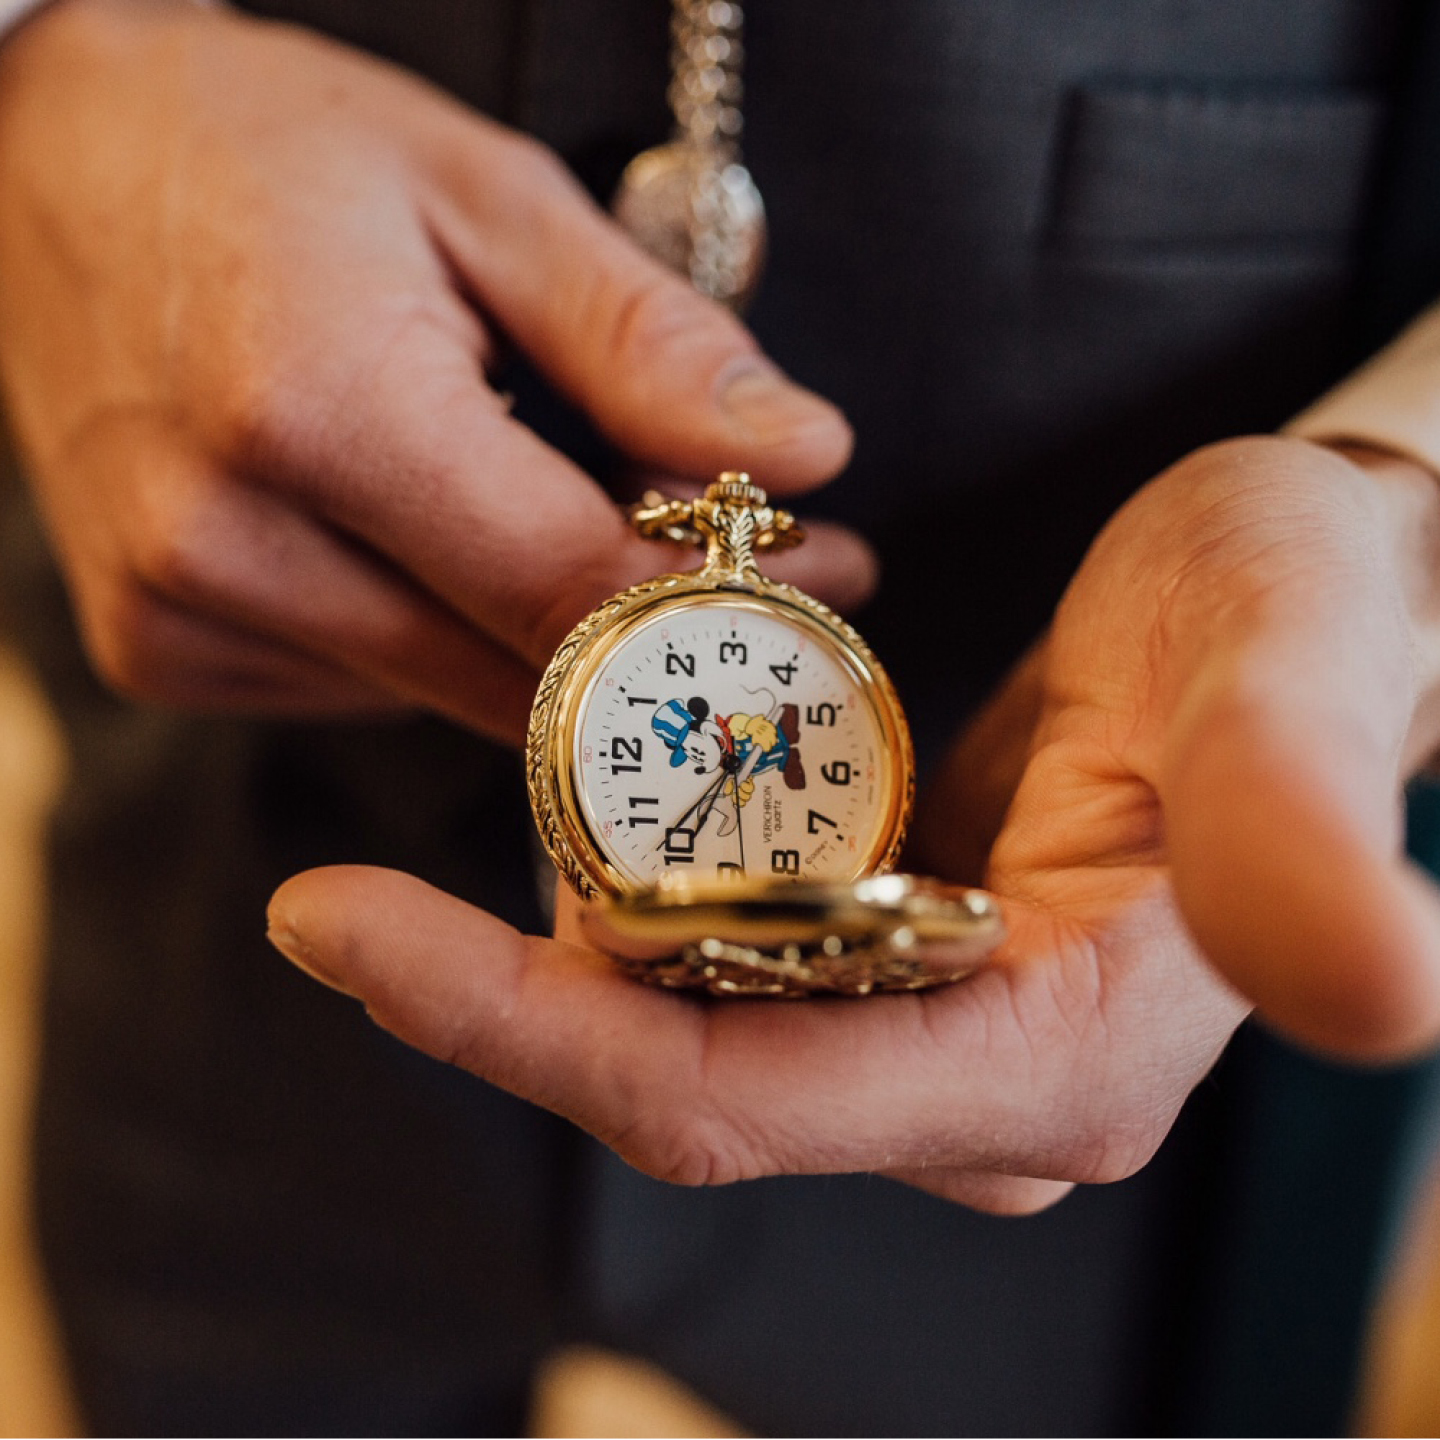 Disney wedding pocket watch